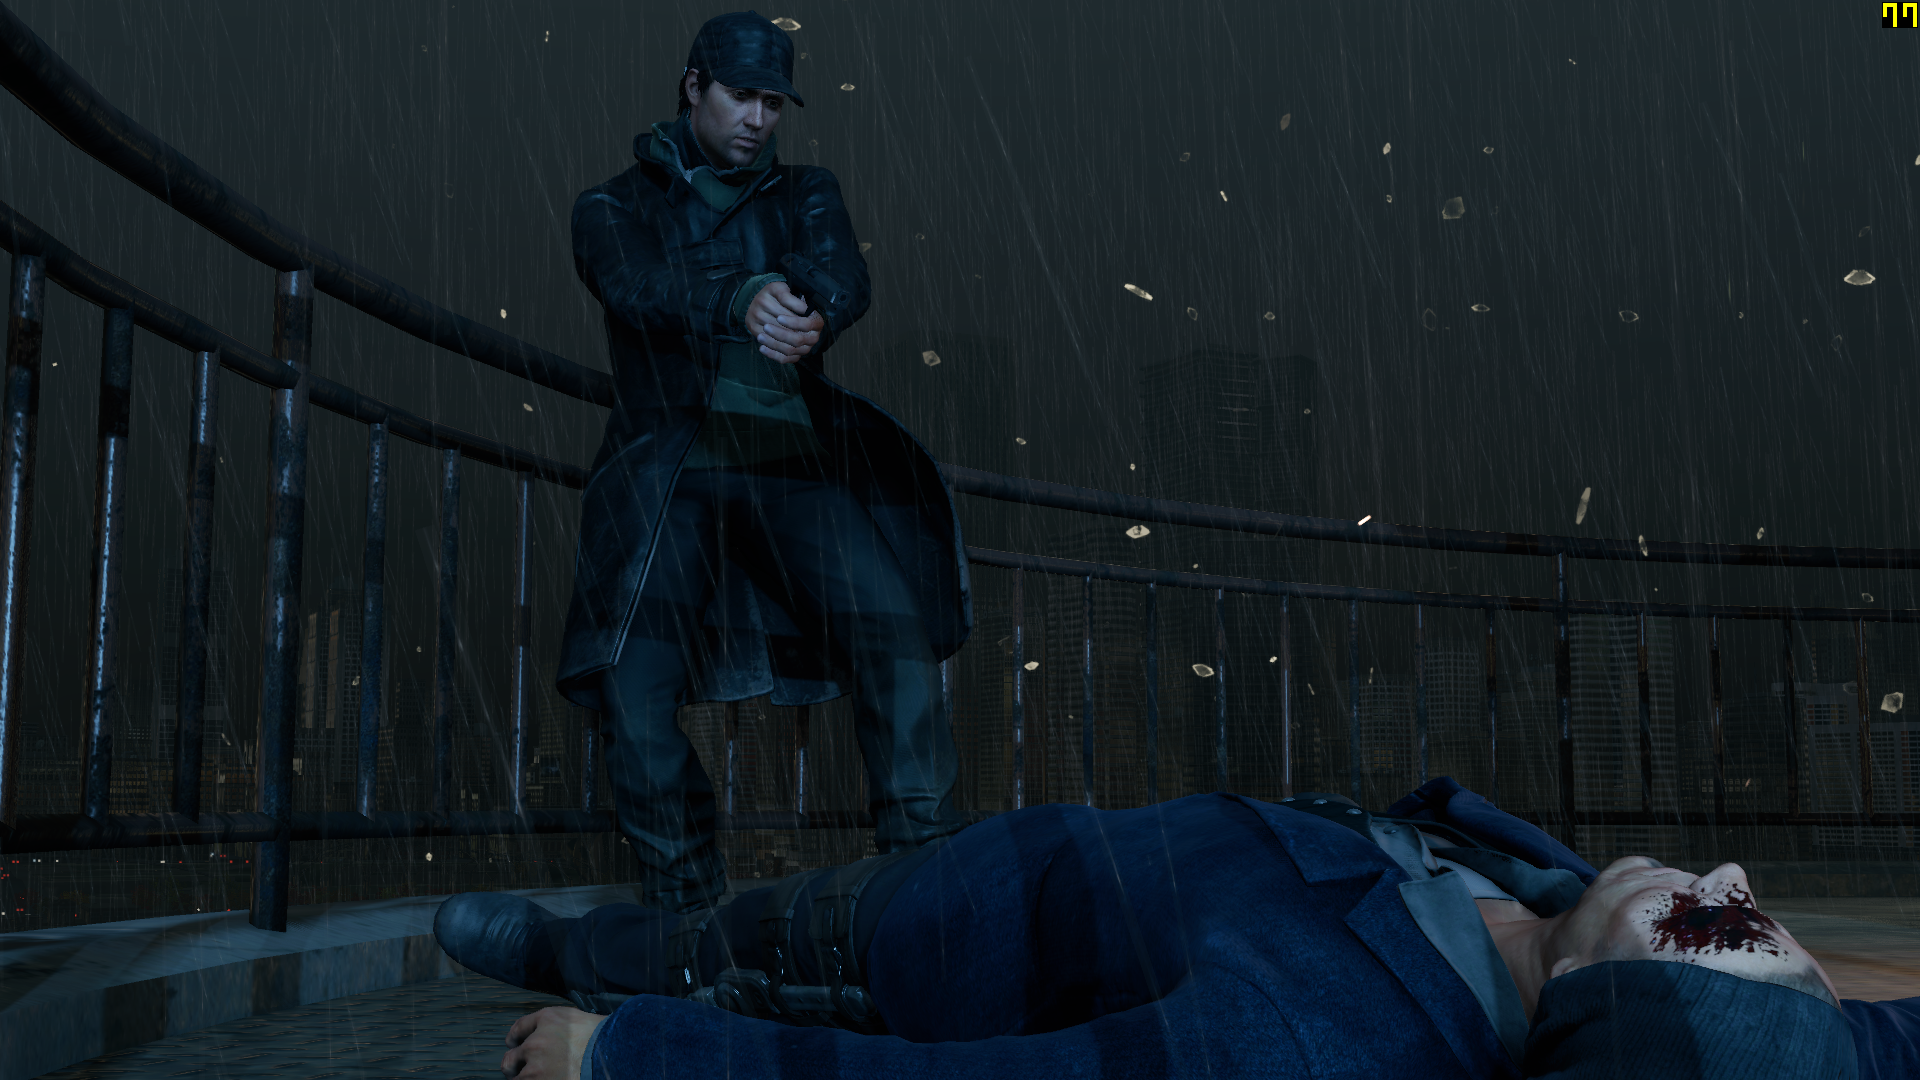 watch_dogs-spoilers-05tlyc.png